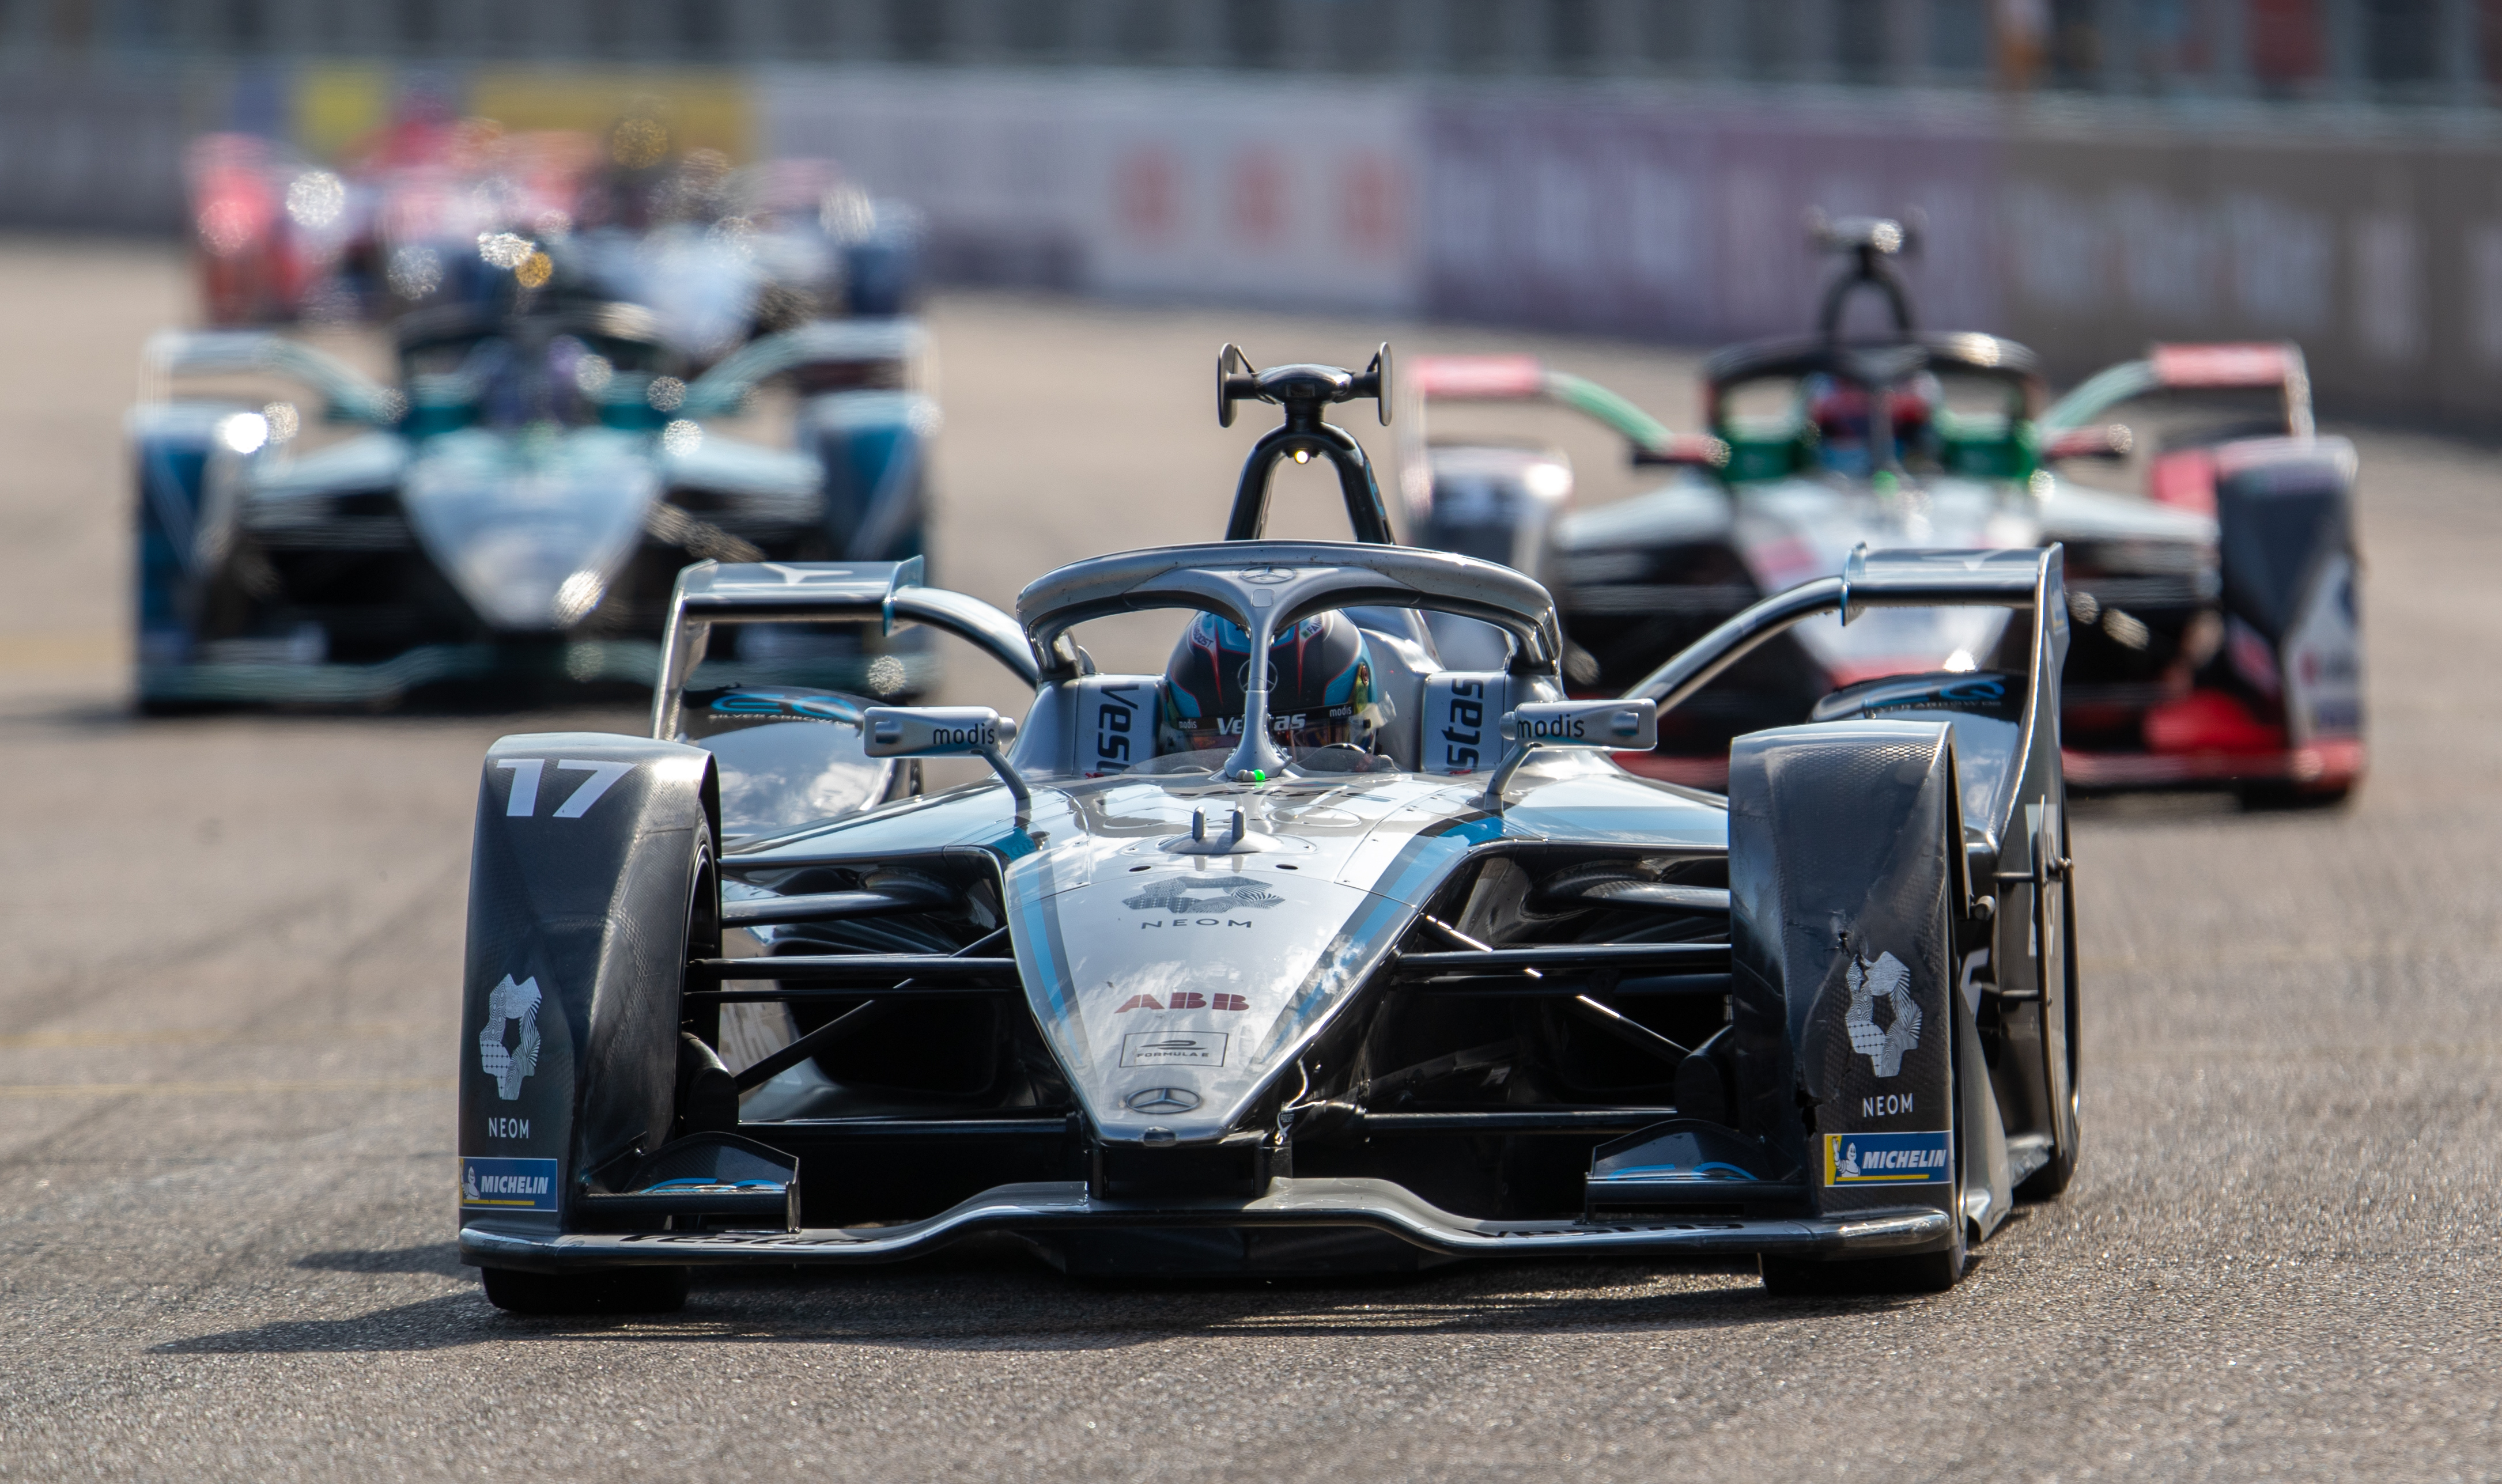 Nyck de Vries of the Mercedes-EQ Formula E team in action at the final race of the season in Berlin.